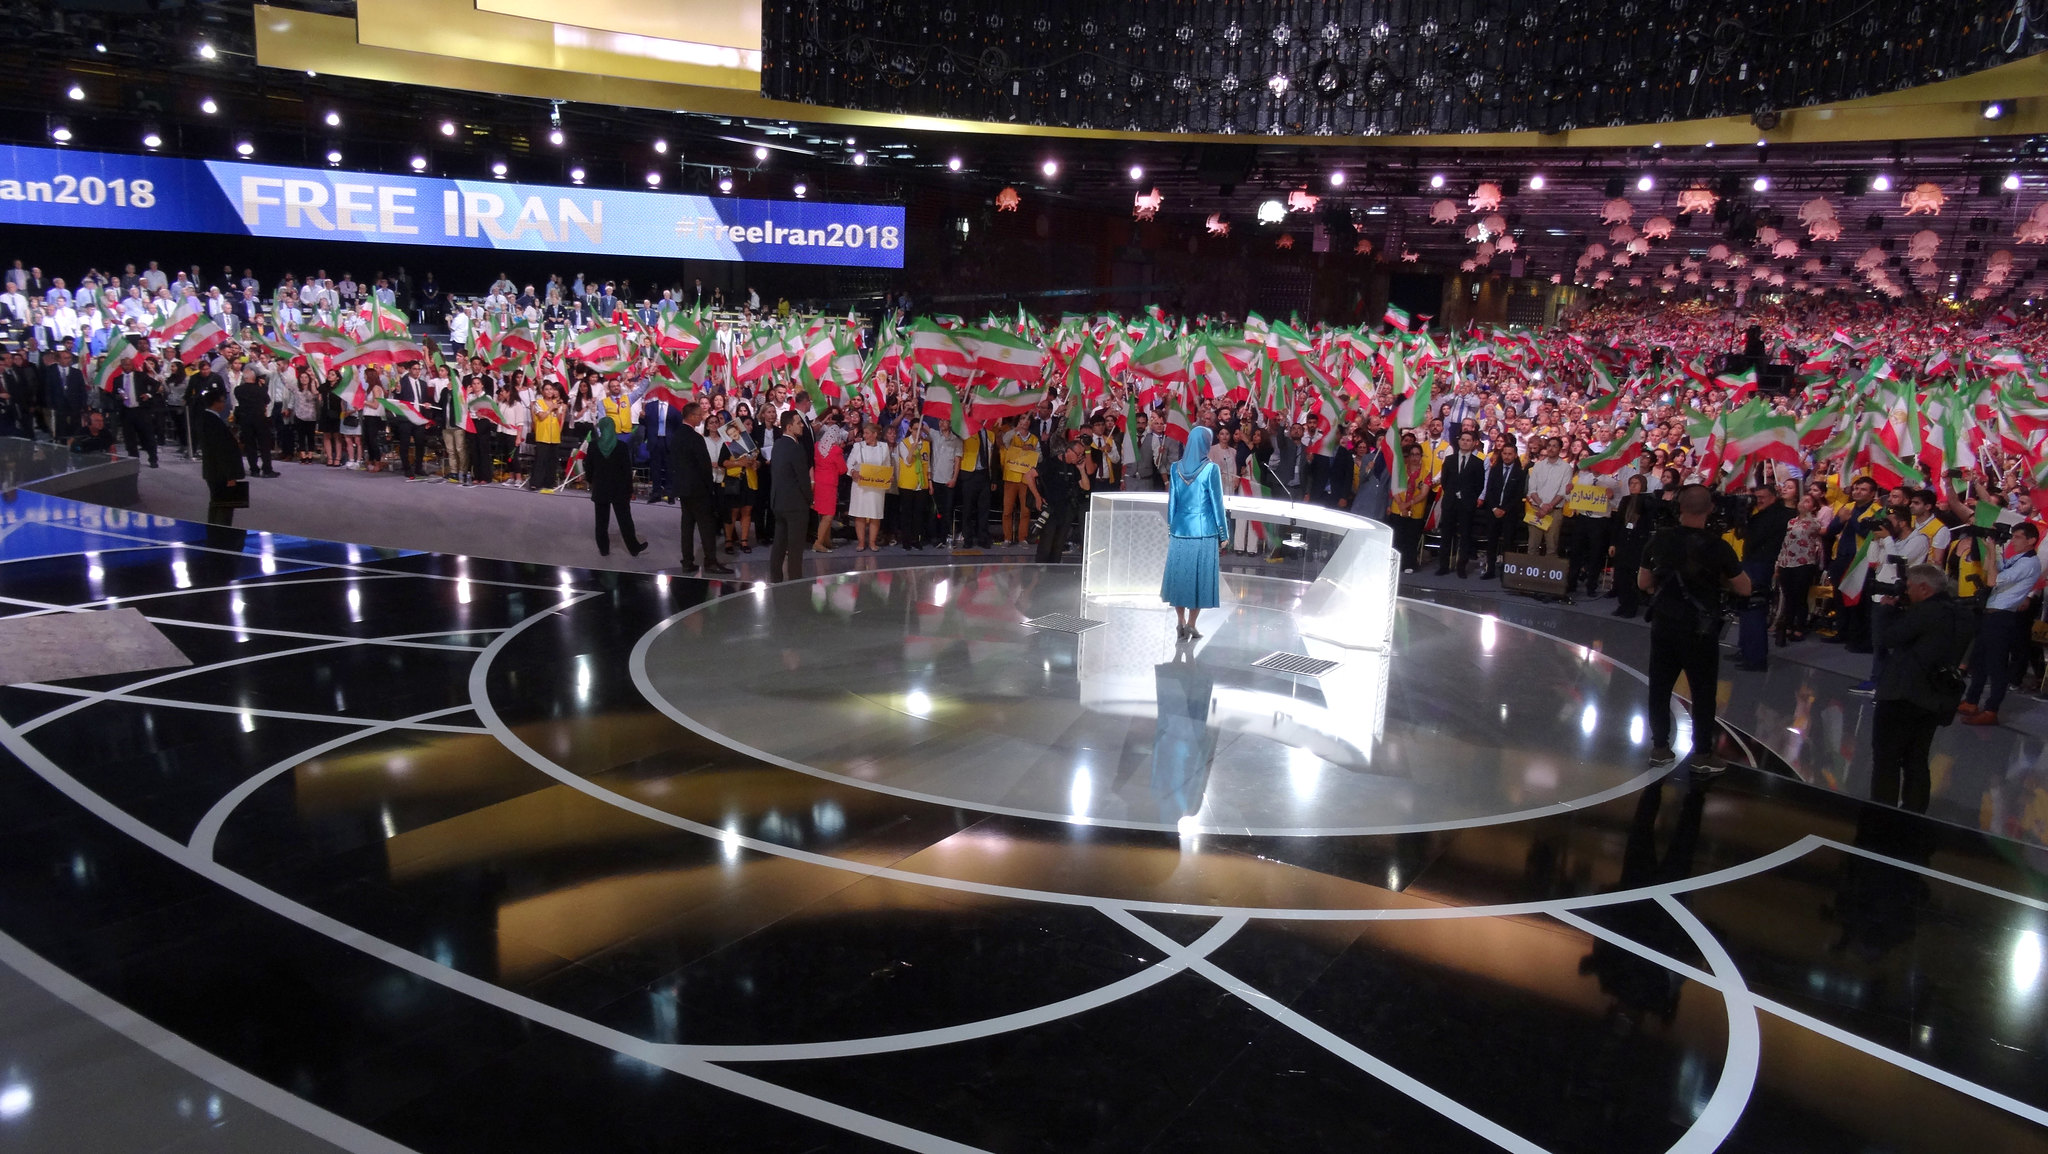 Iran: Bipartisan Group of Prominent U.S. Figures Support the NCRI and the MEK